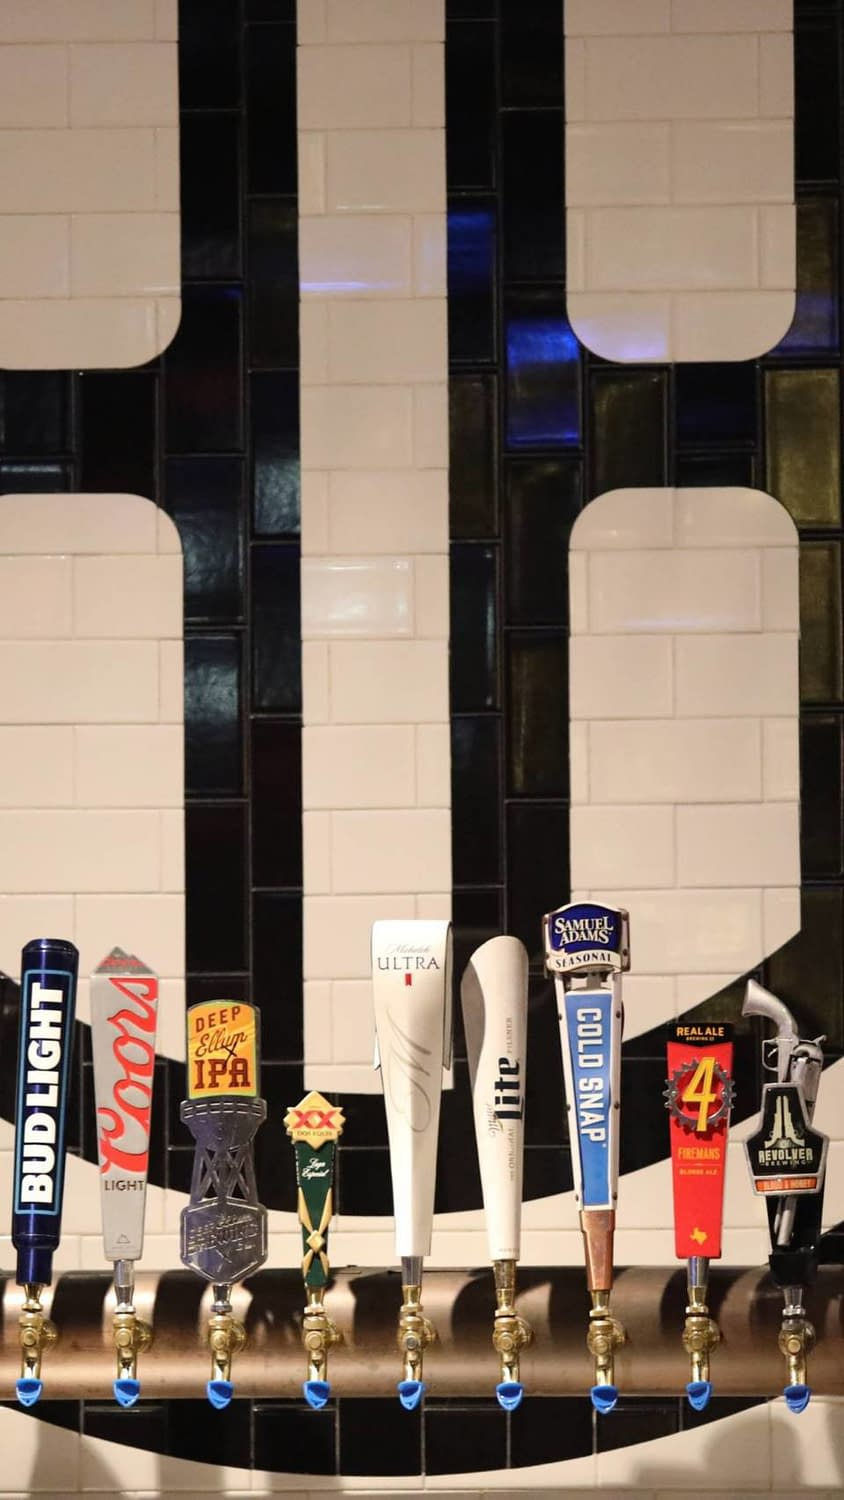 A shot of the tap at the Happiest Hour in Dallas Texas' uptown.